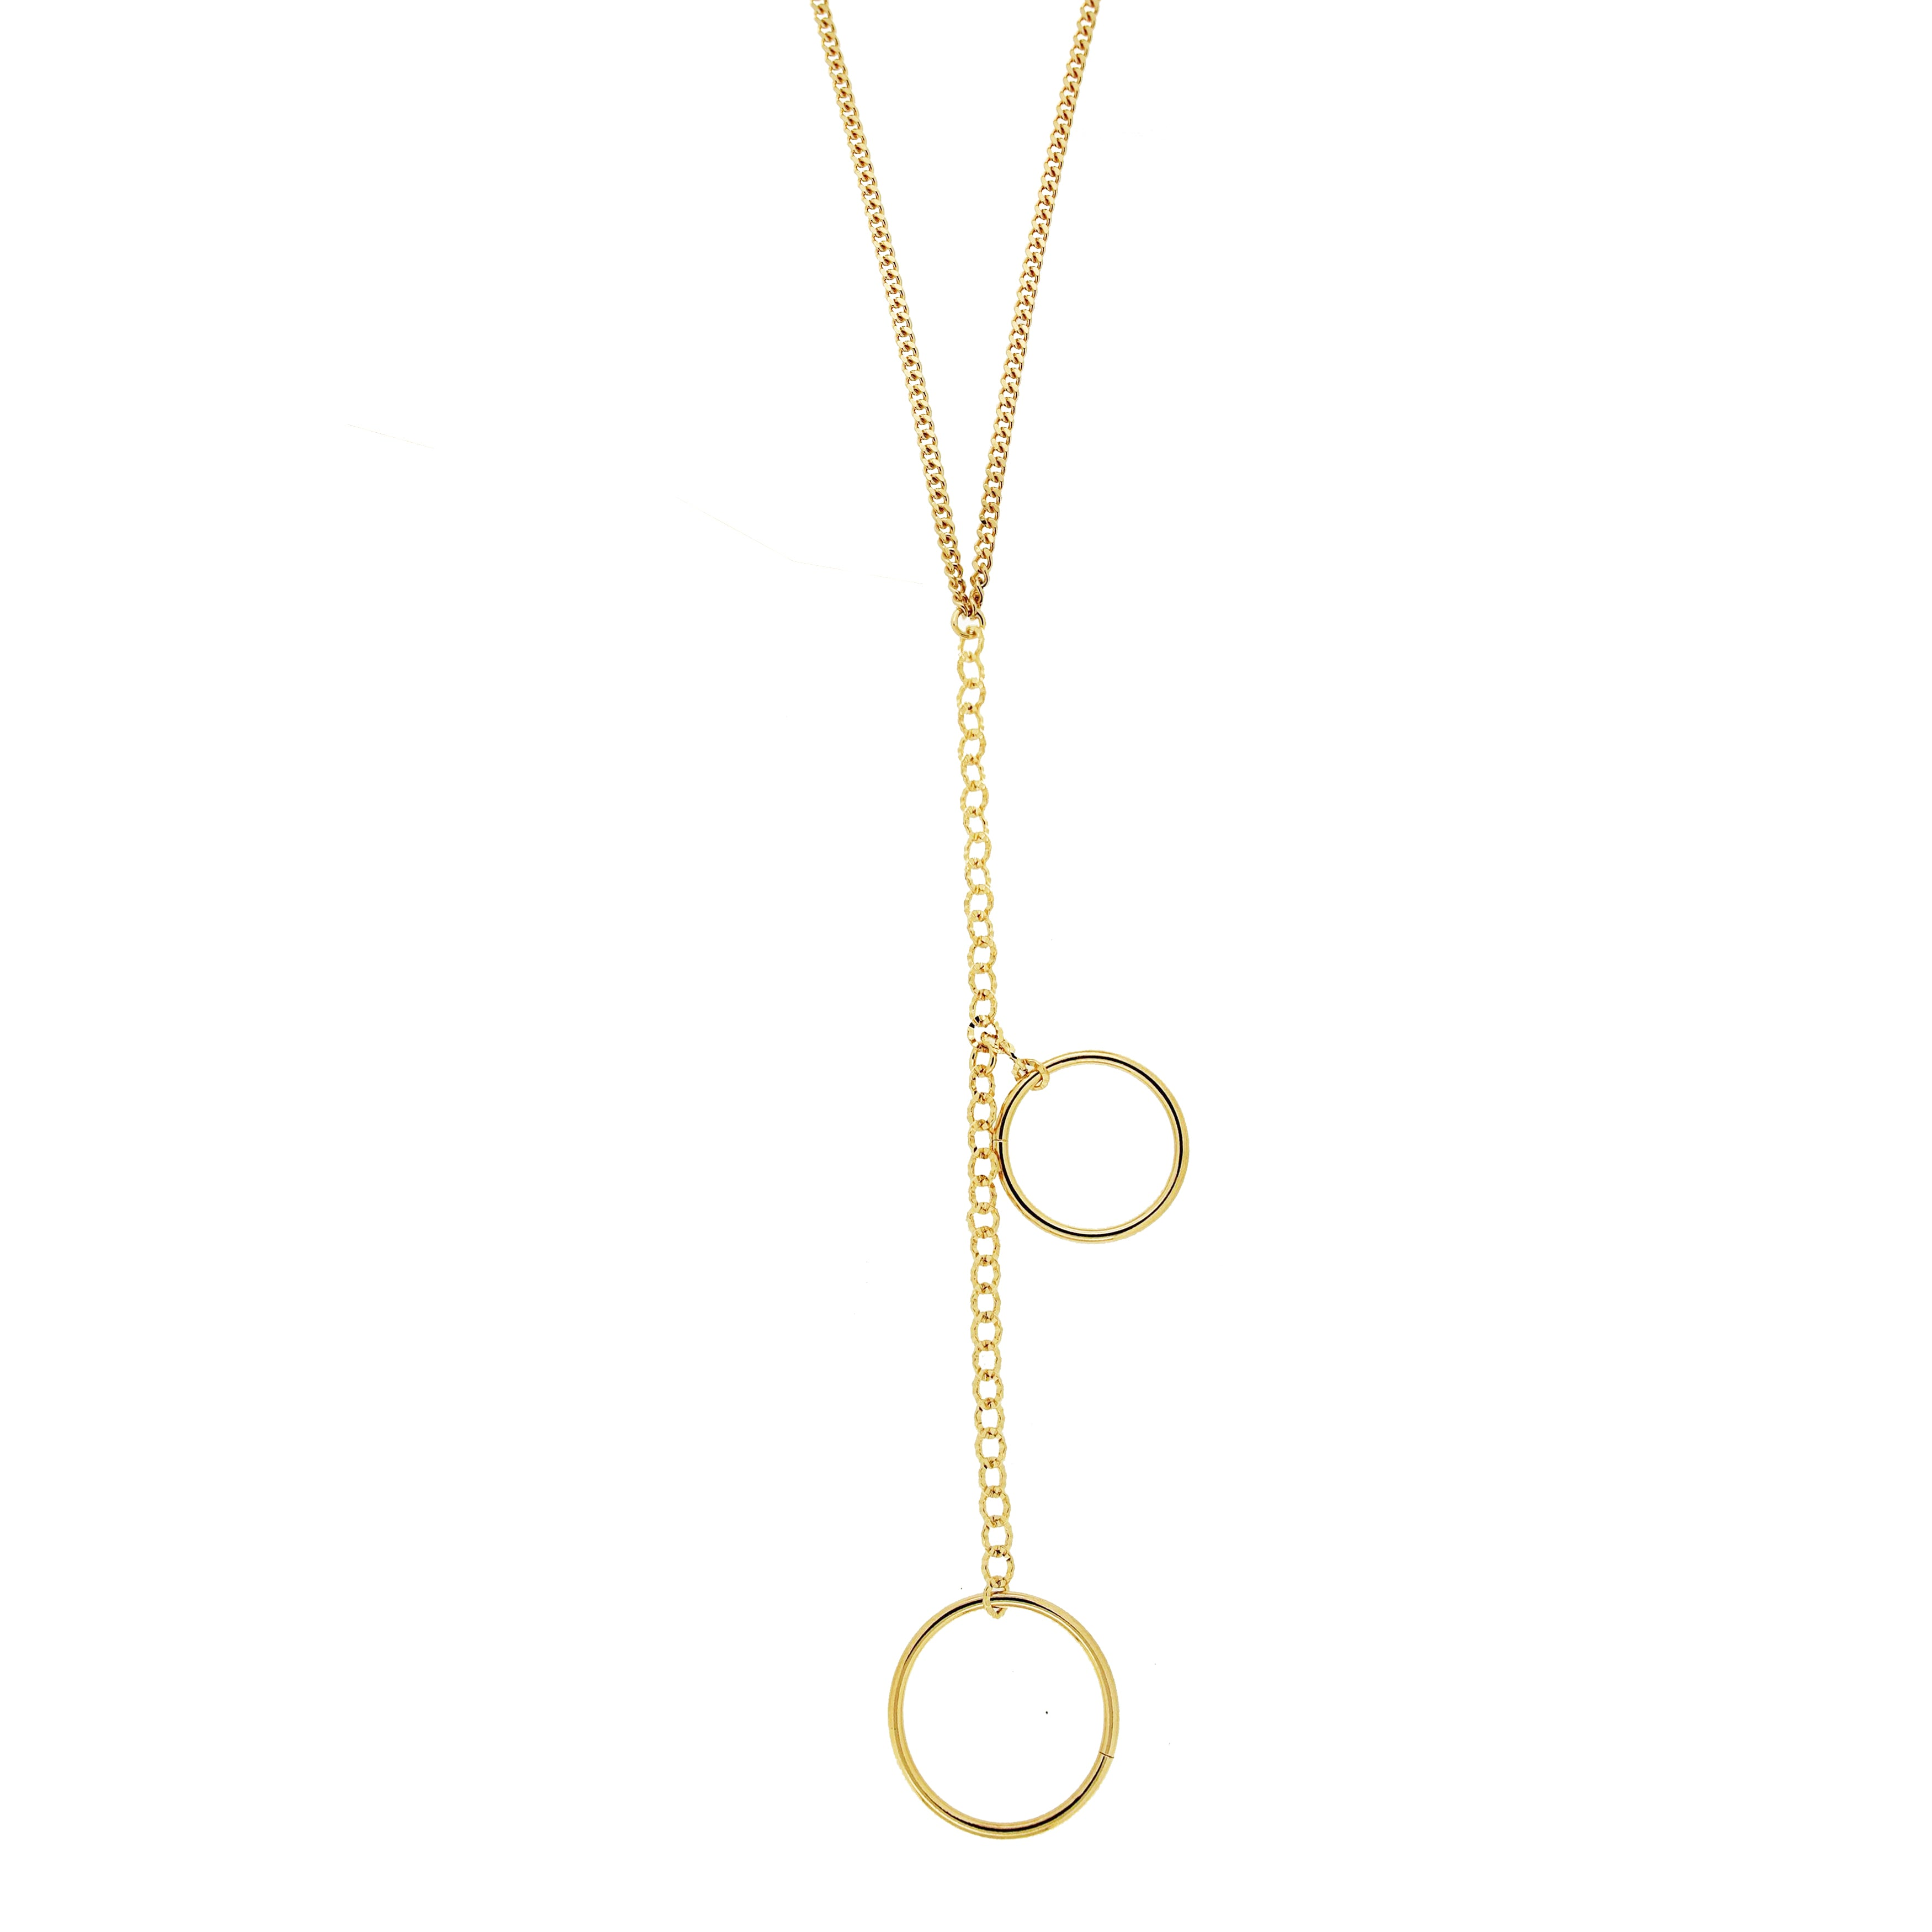 Forever Last 18 k Gold Plated  Long Link Curb W/ Drop Down Doubles Rings  Necklace